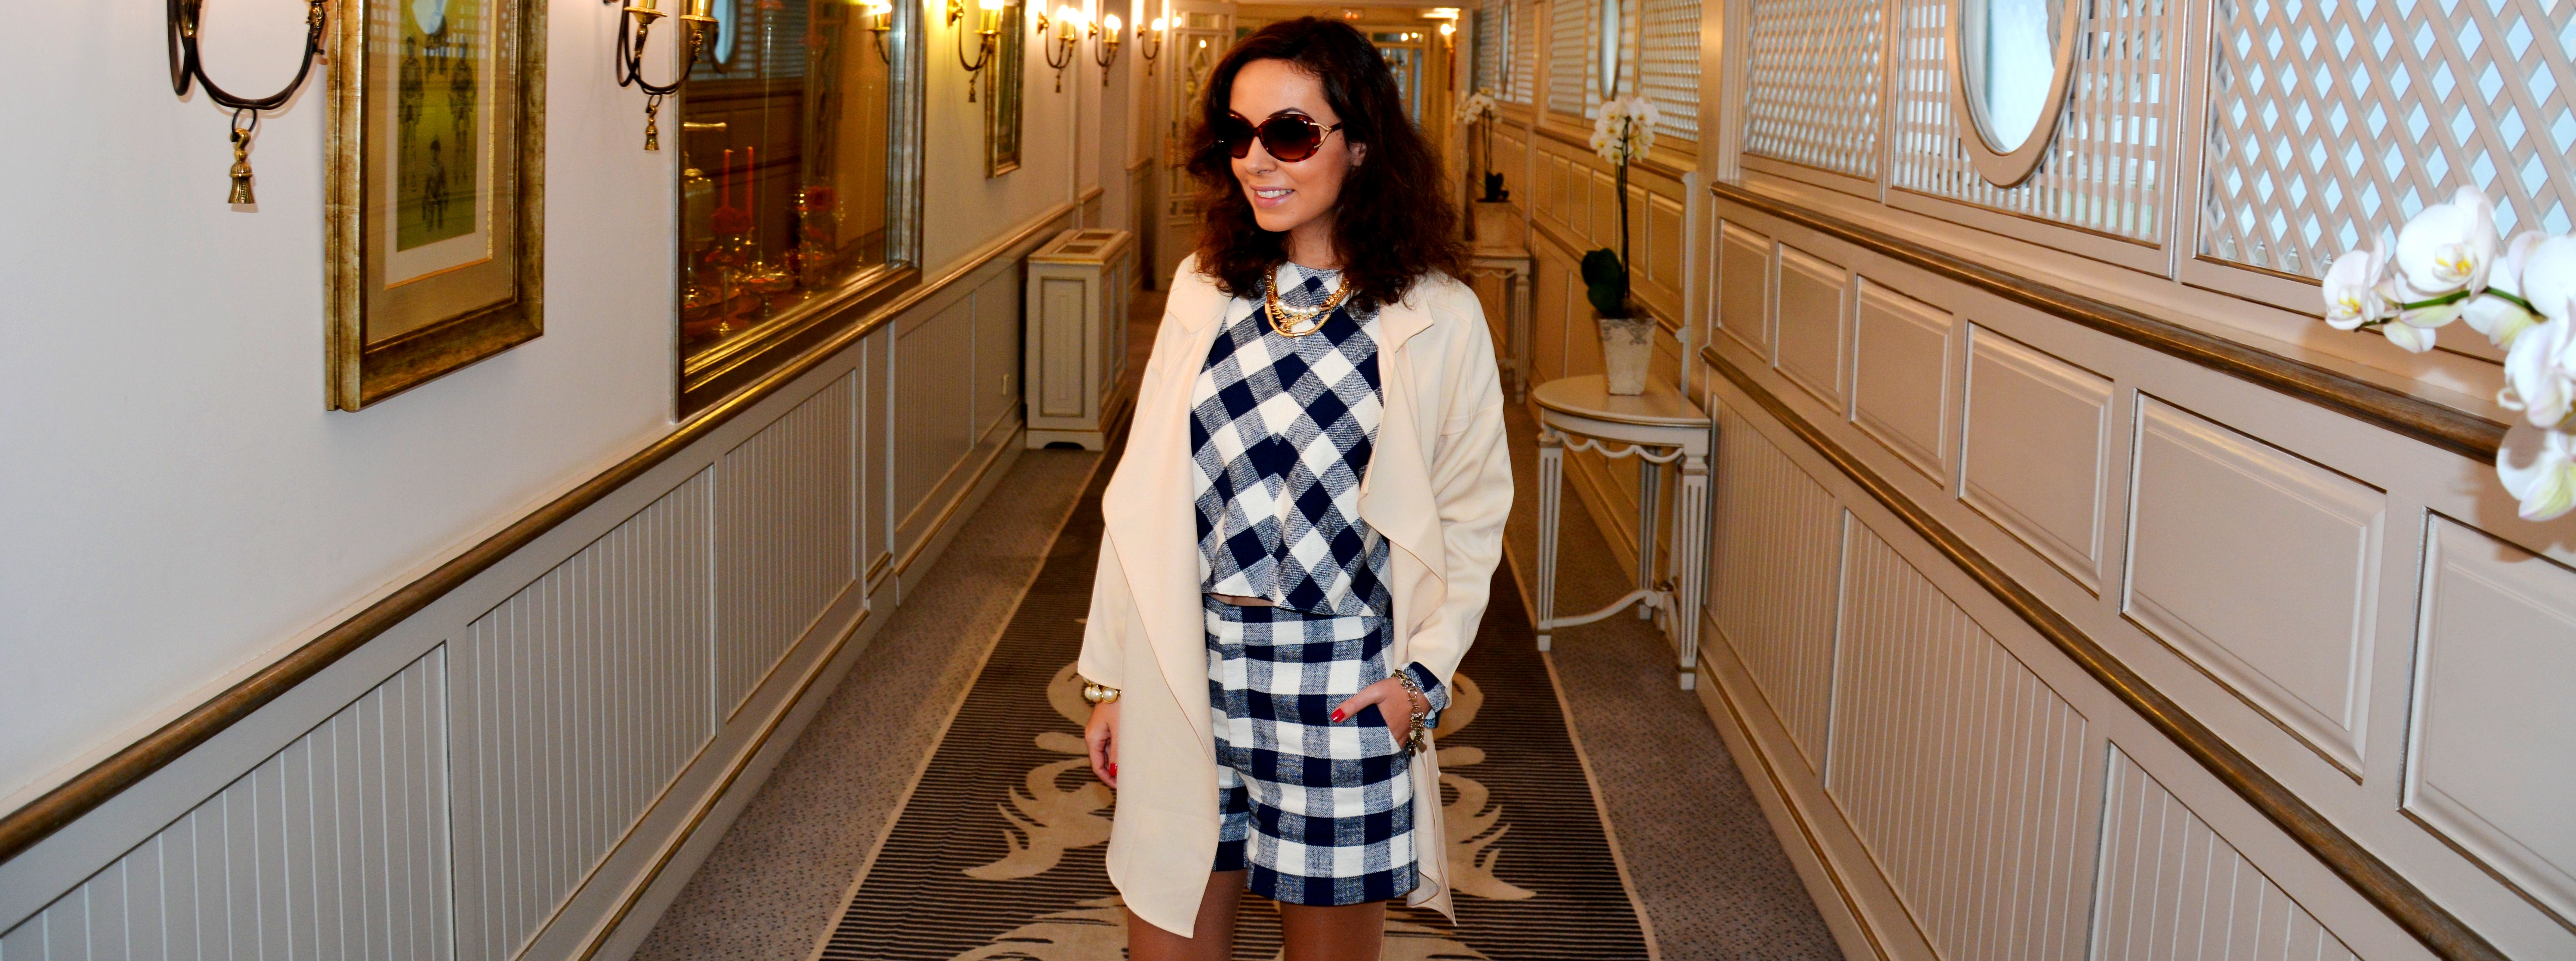 Spring 2015 Trend Forecast – Vichy Print or Gingham